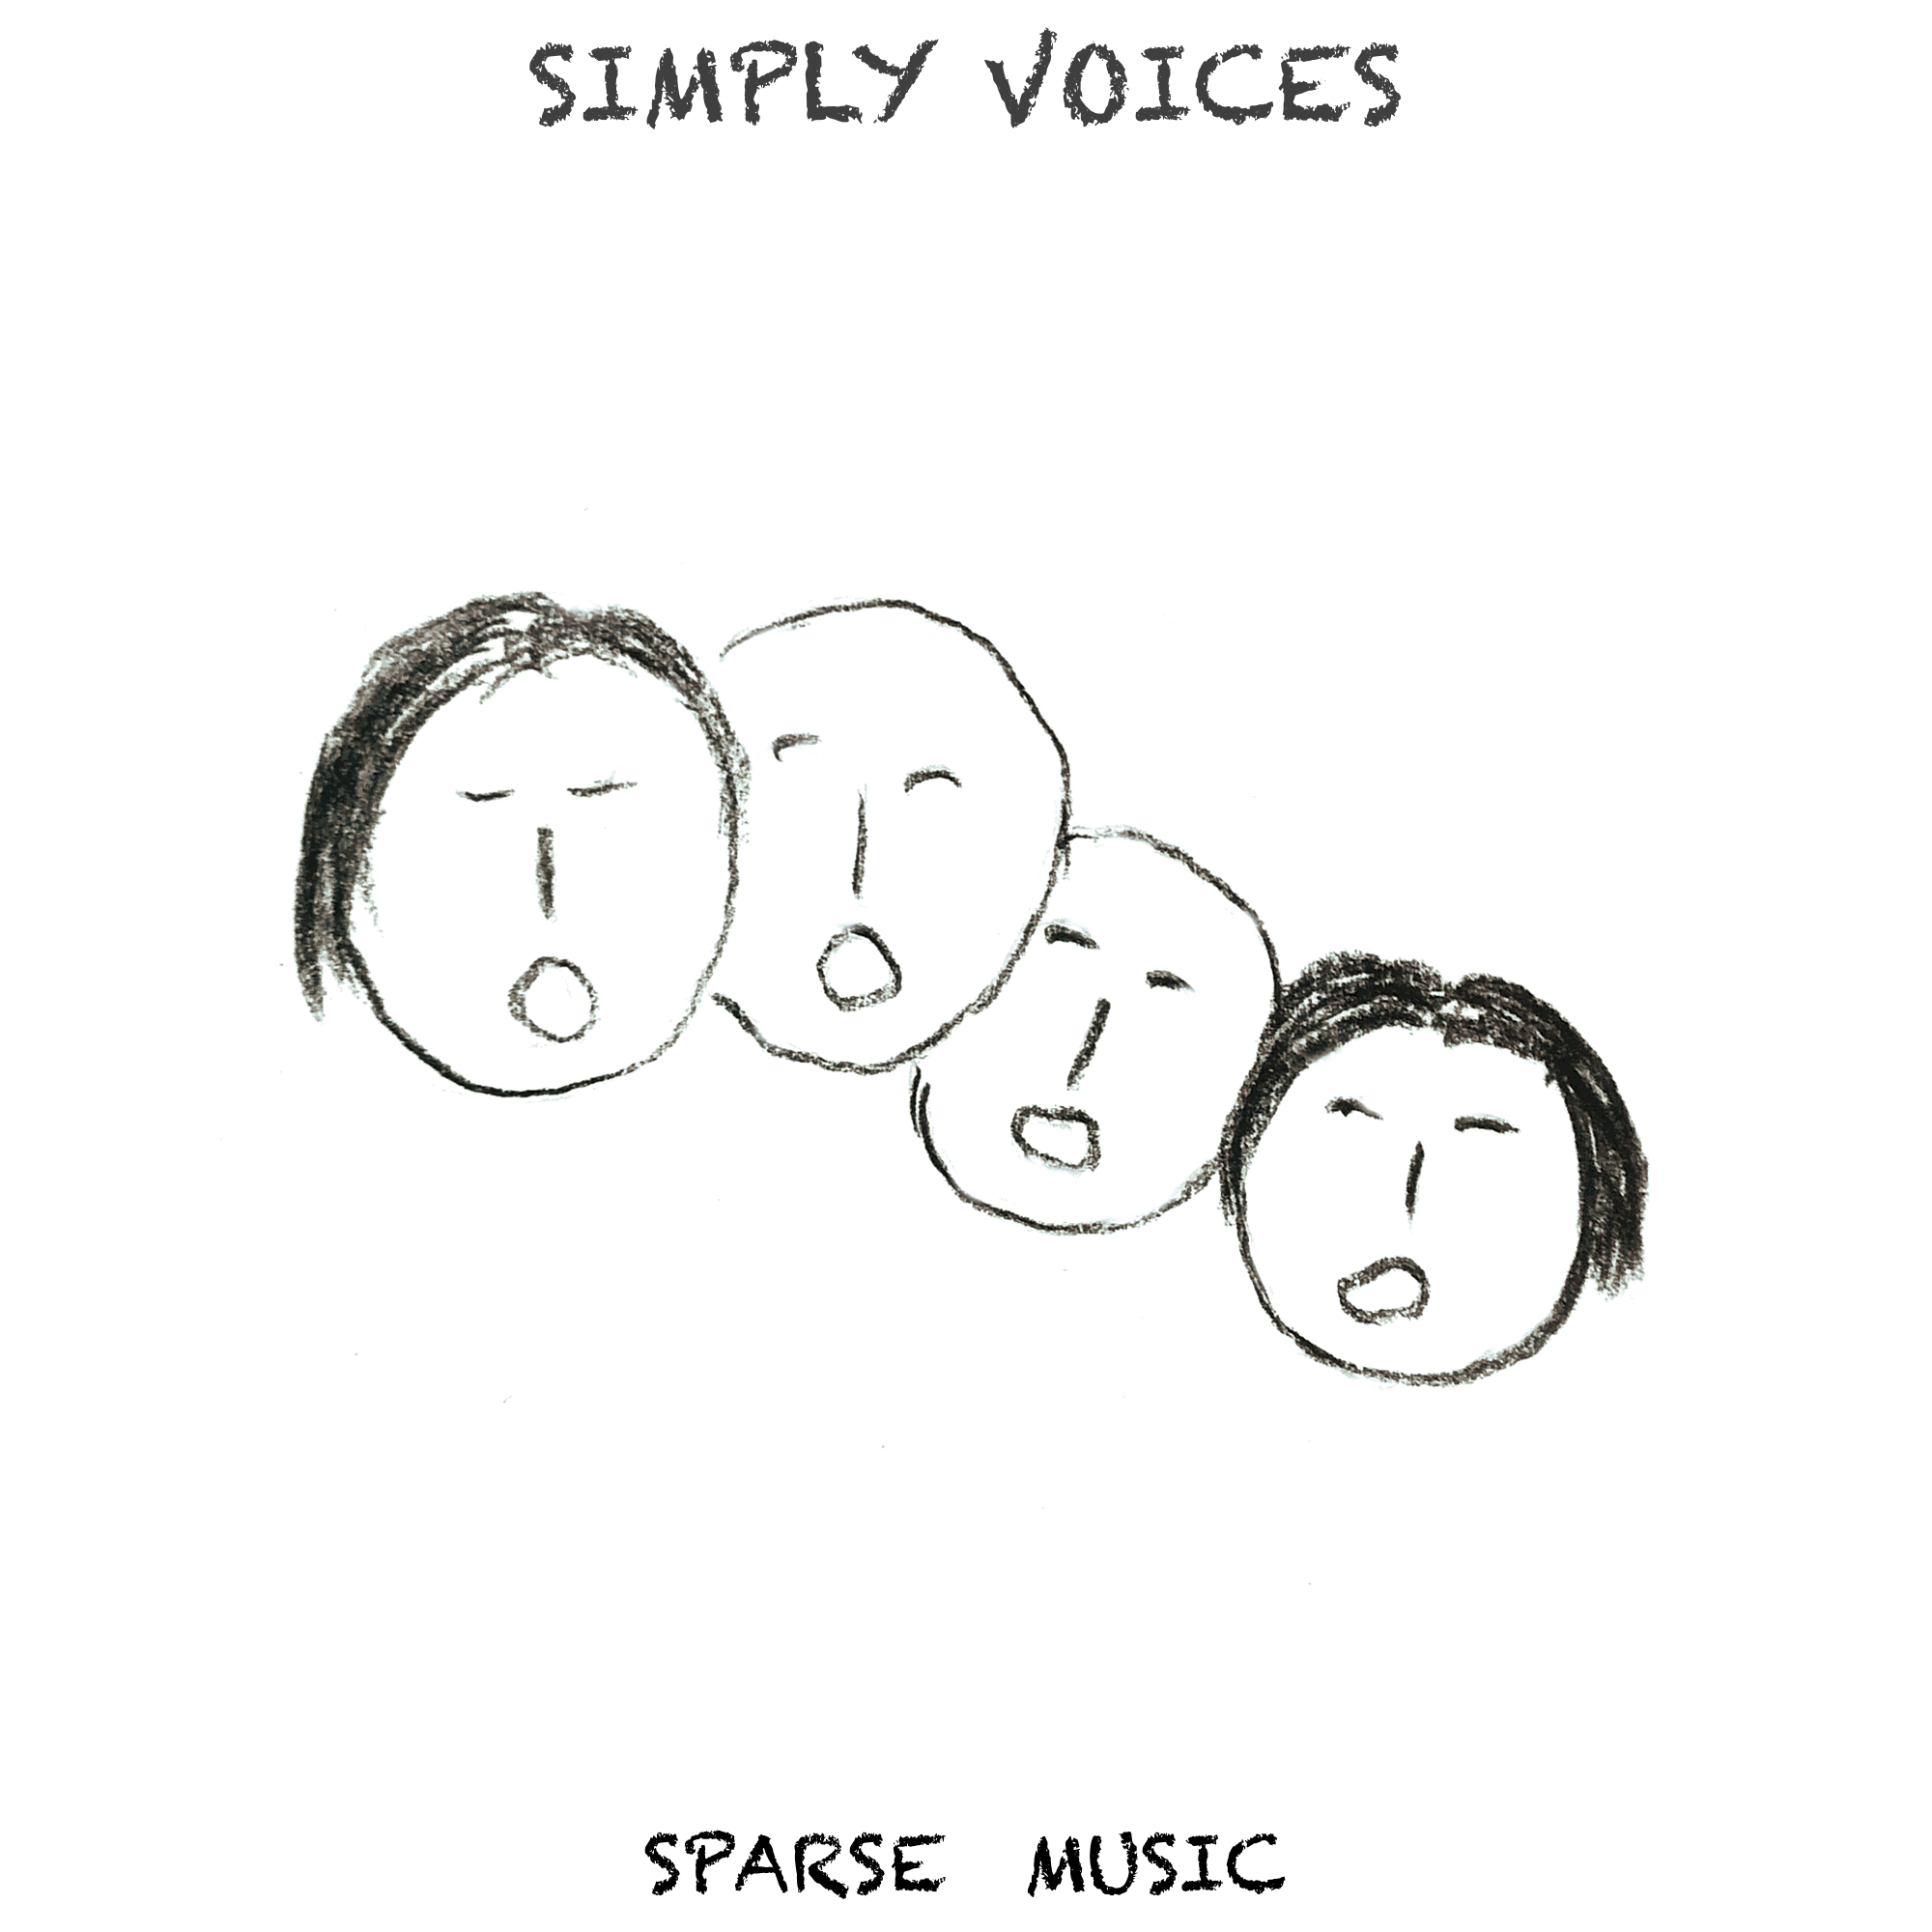 SPRS 01050 SIimpy Voices2000